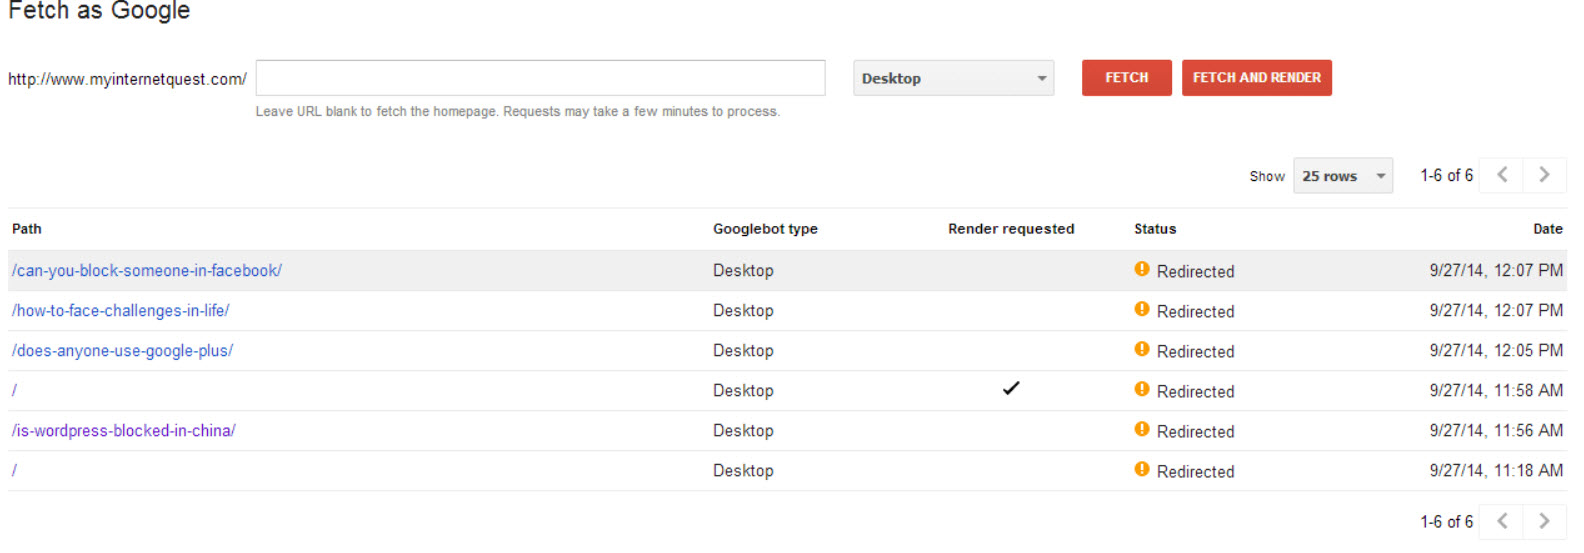 Fetch as Google redirected